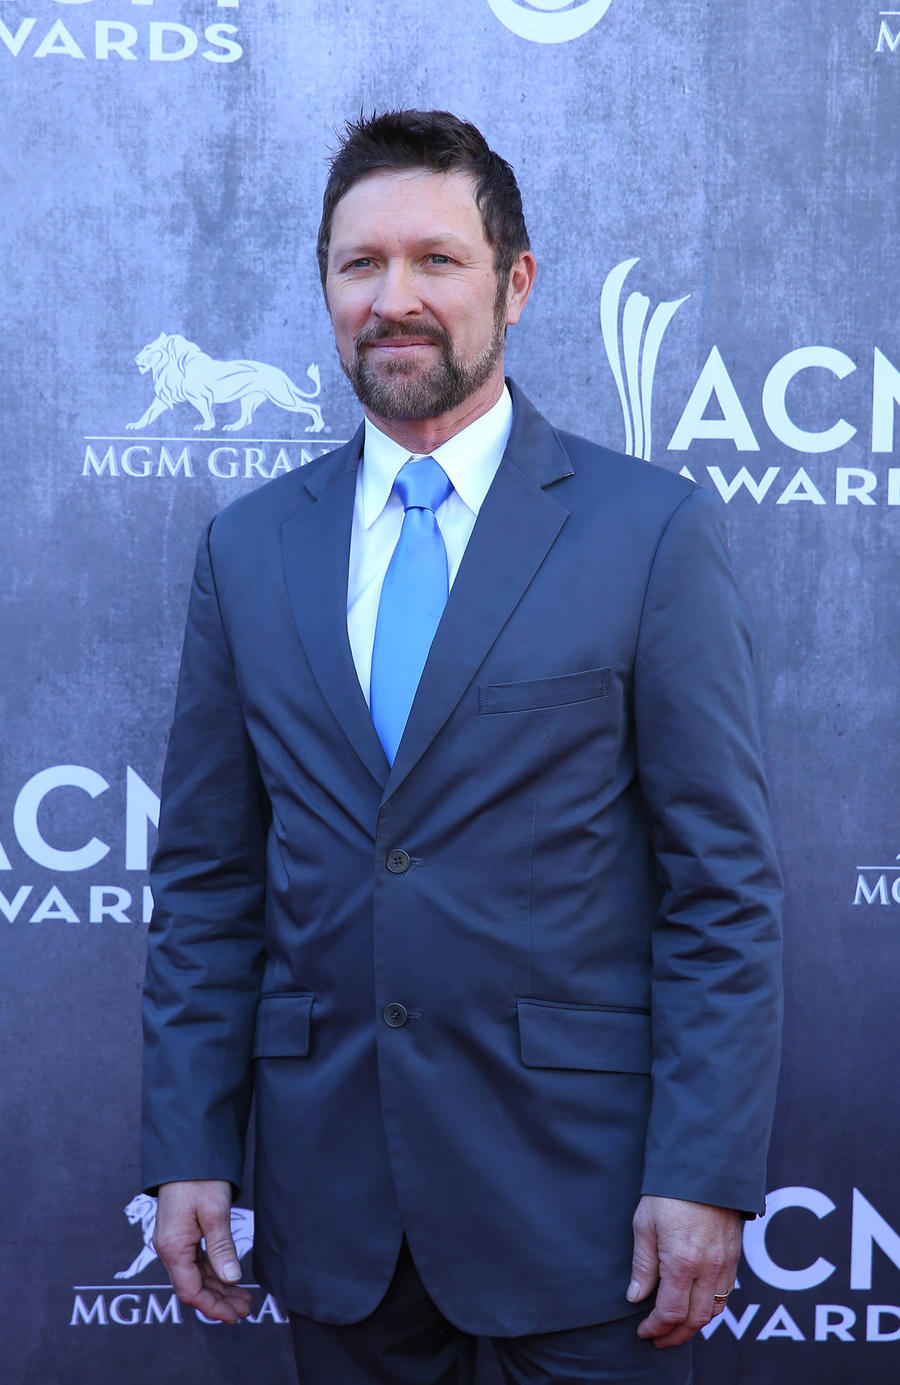 Craig Morgan Mourns Son At Private Funeral